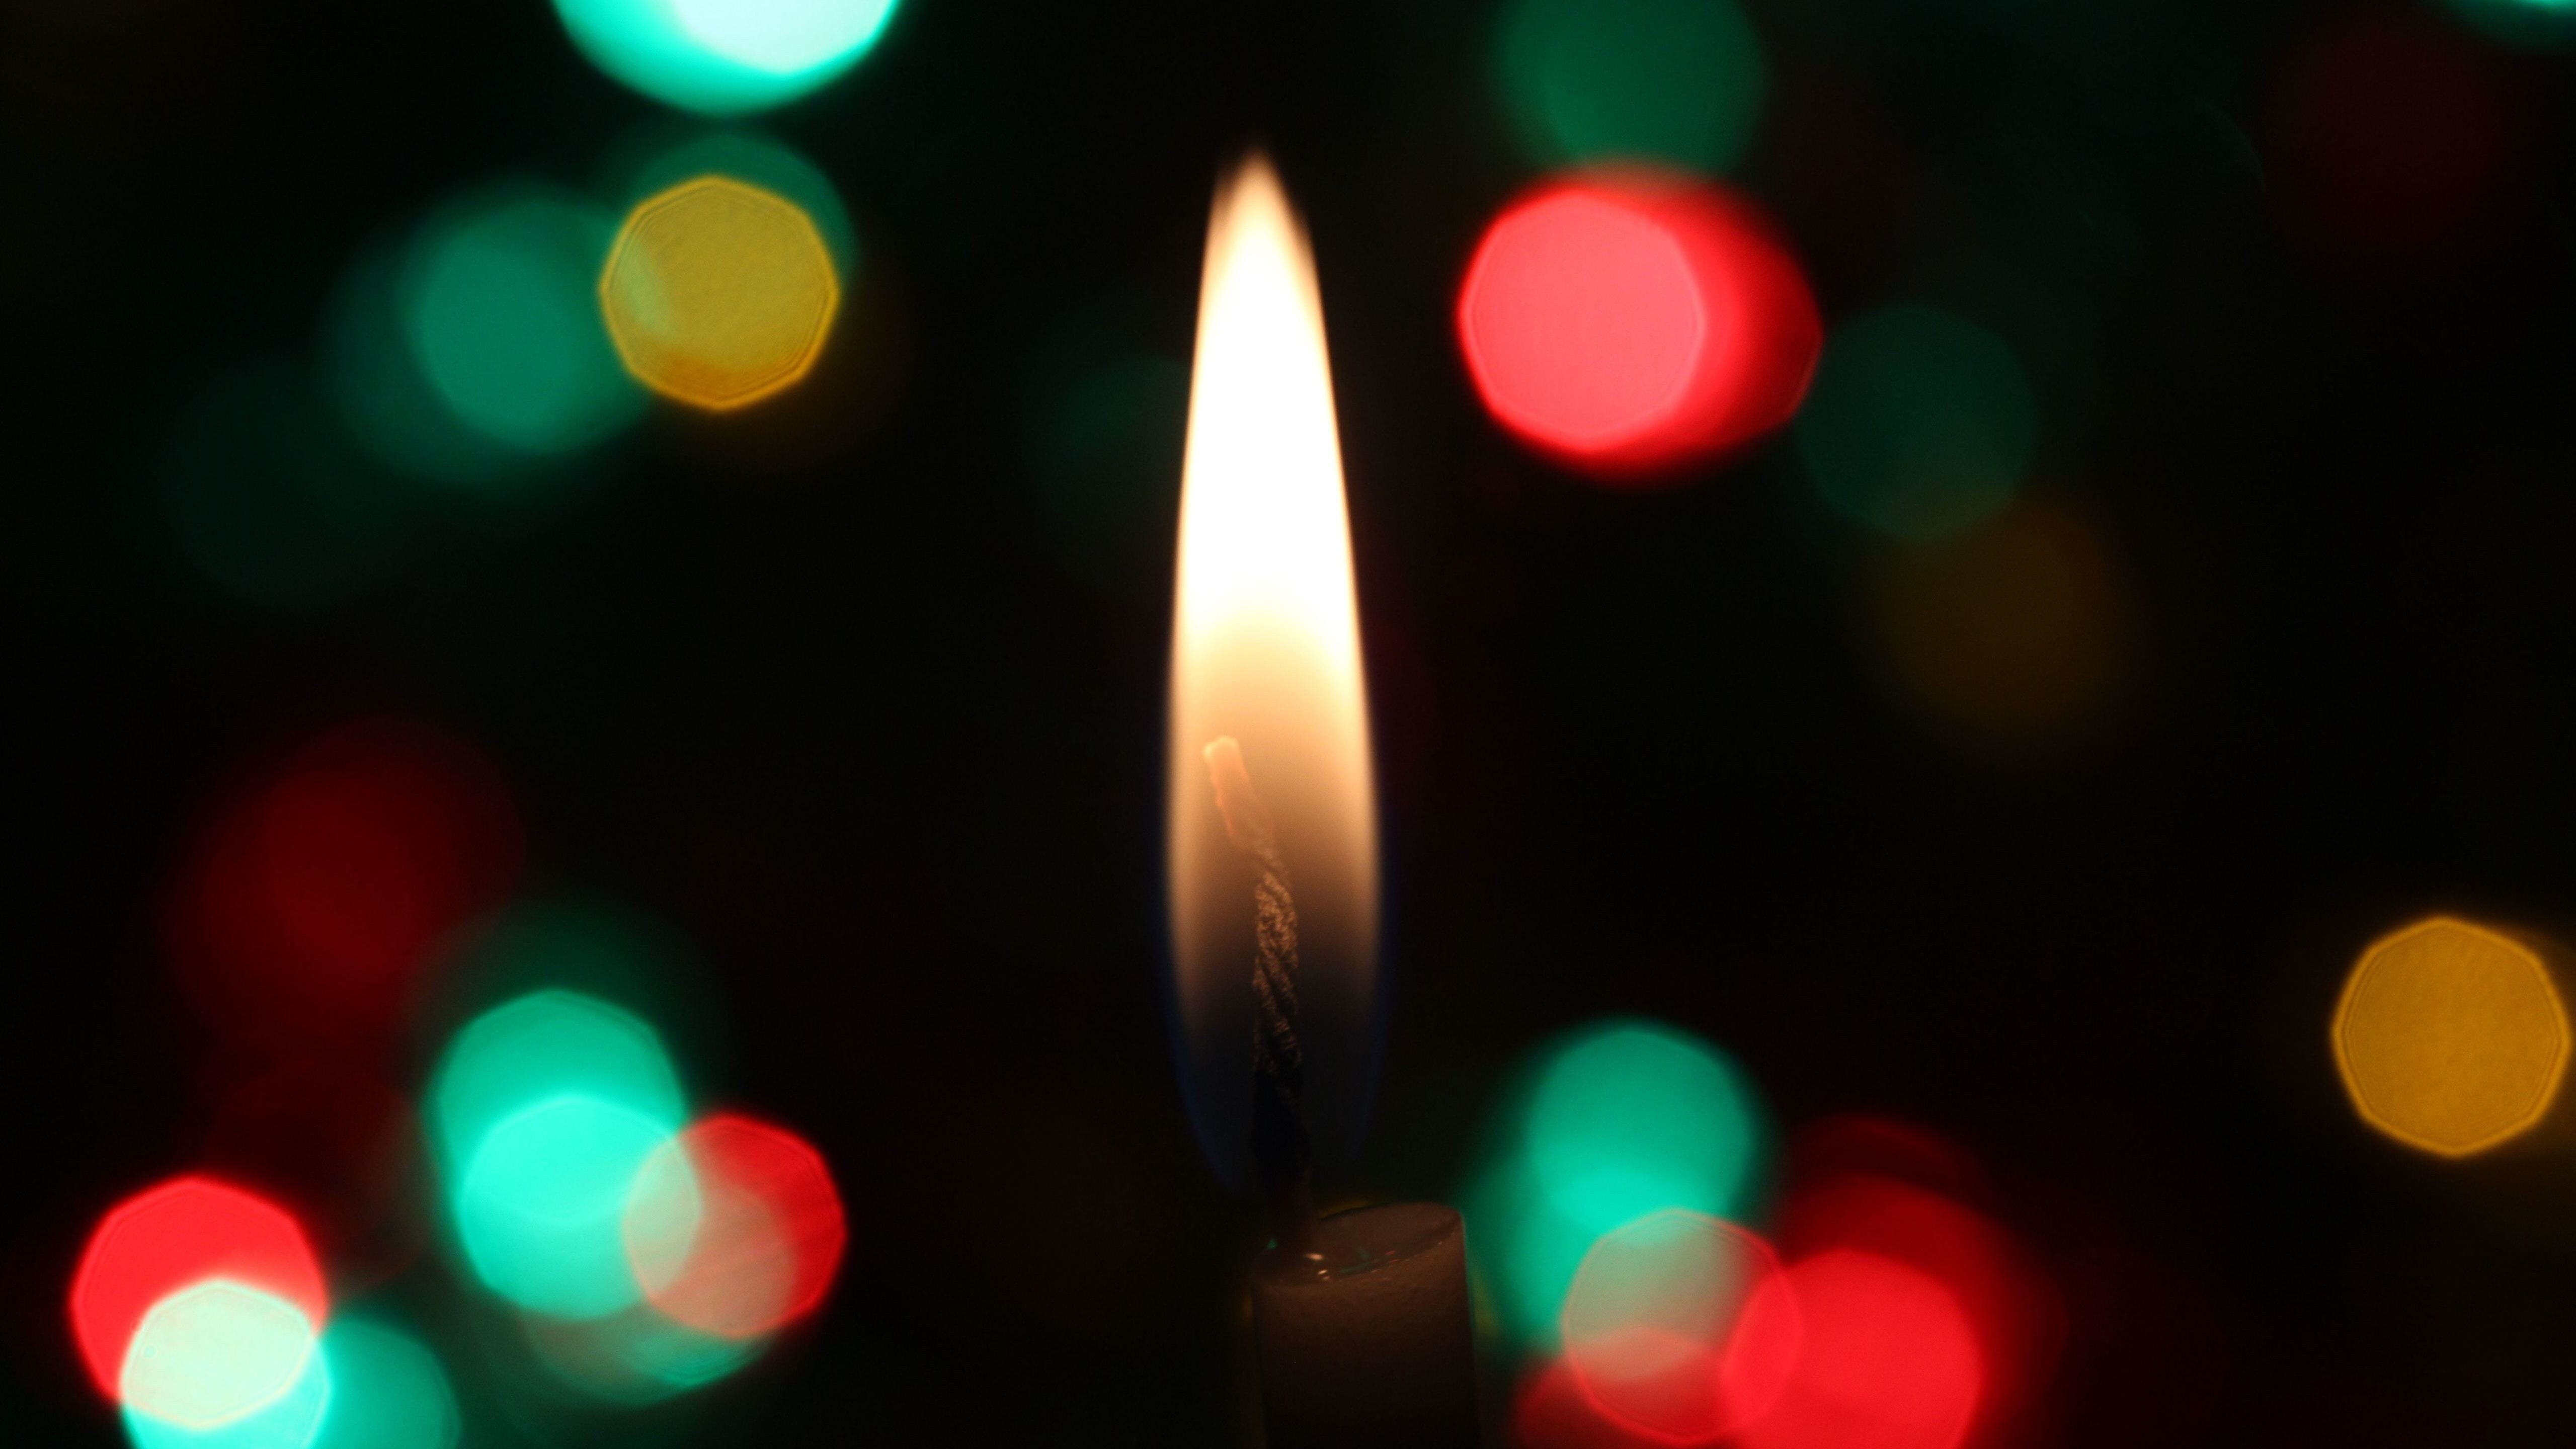 candle flame burns bokeh creative background 5k wallpapers hd